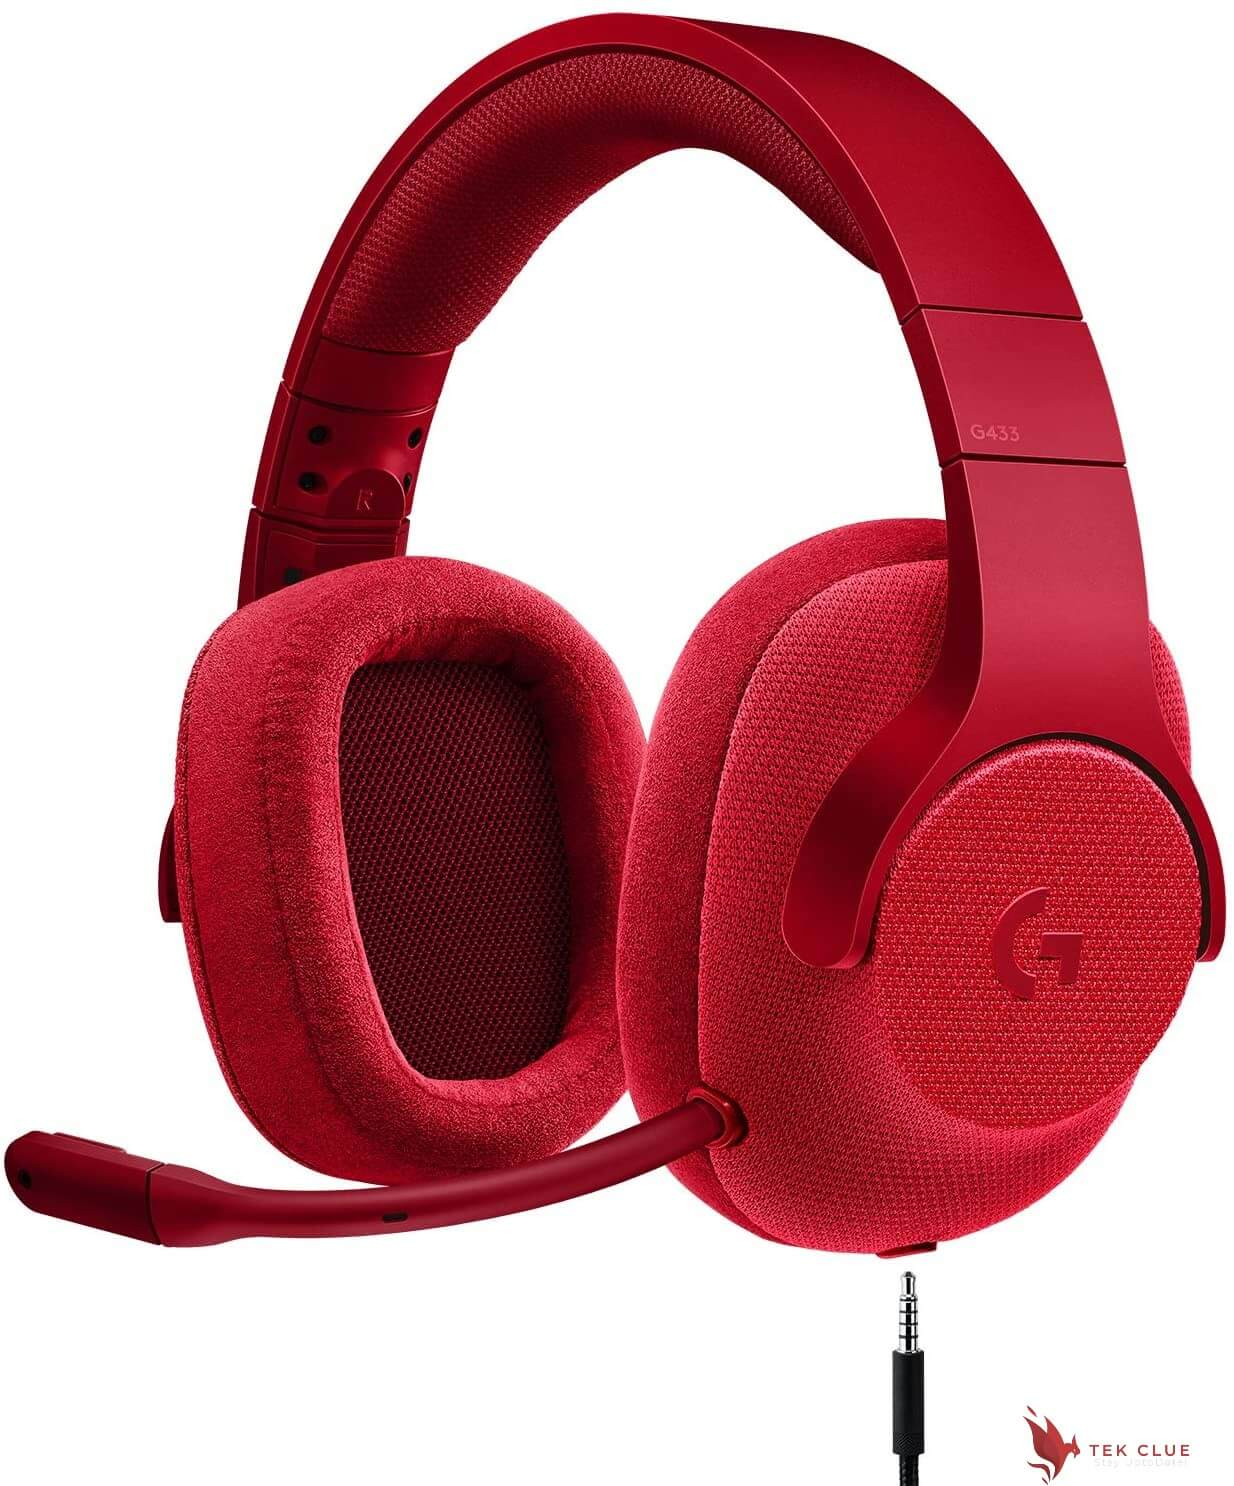 Logitech G433 7.1 Wired Gaming Headset